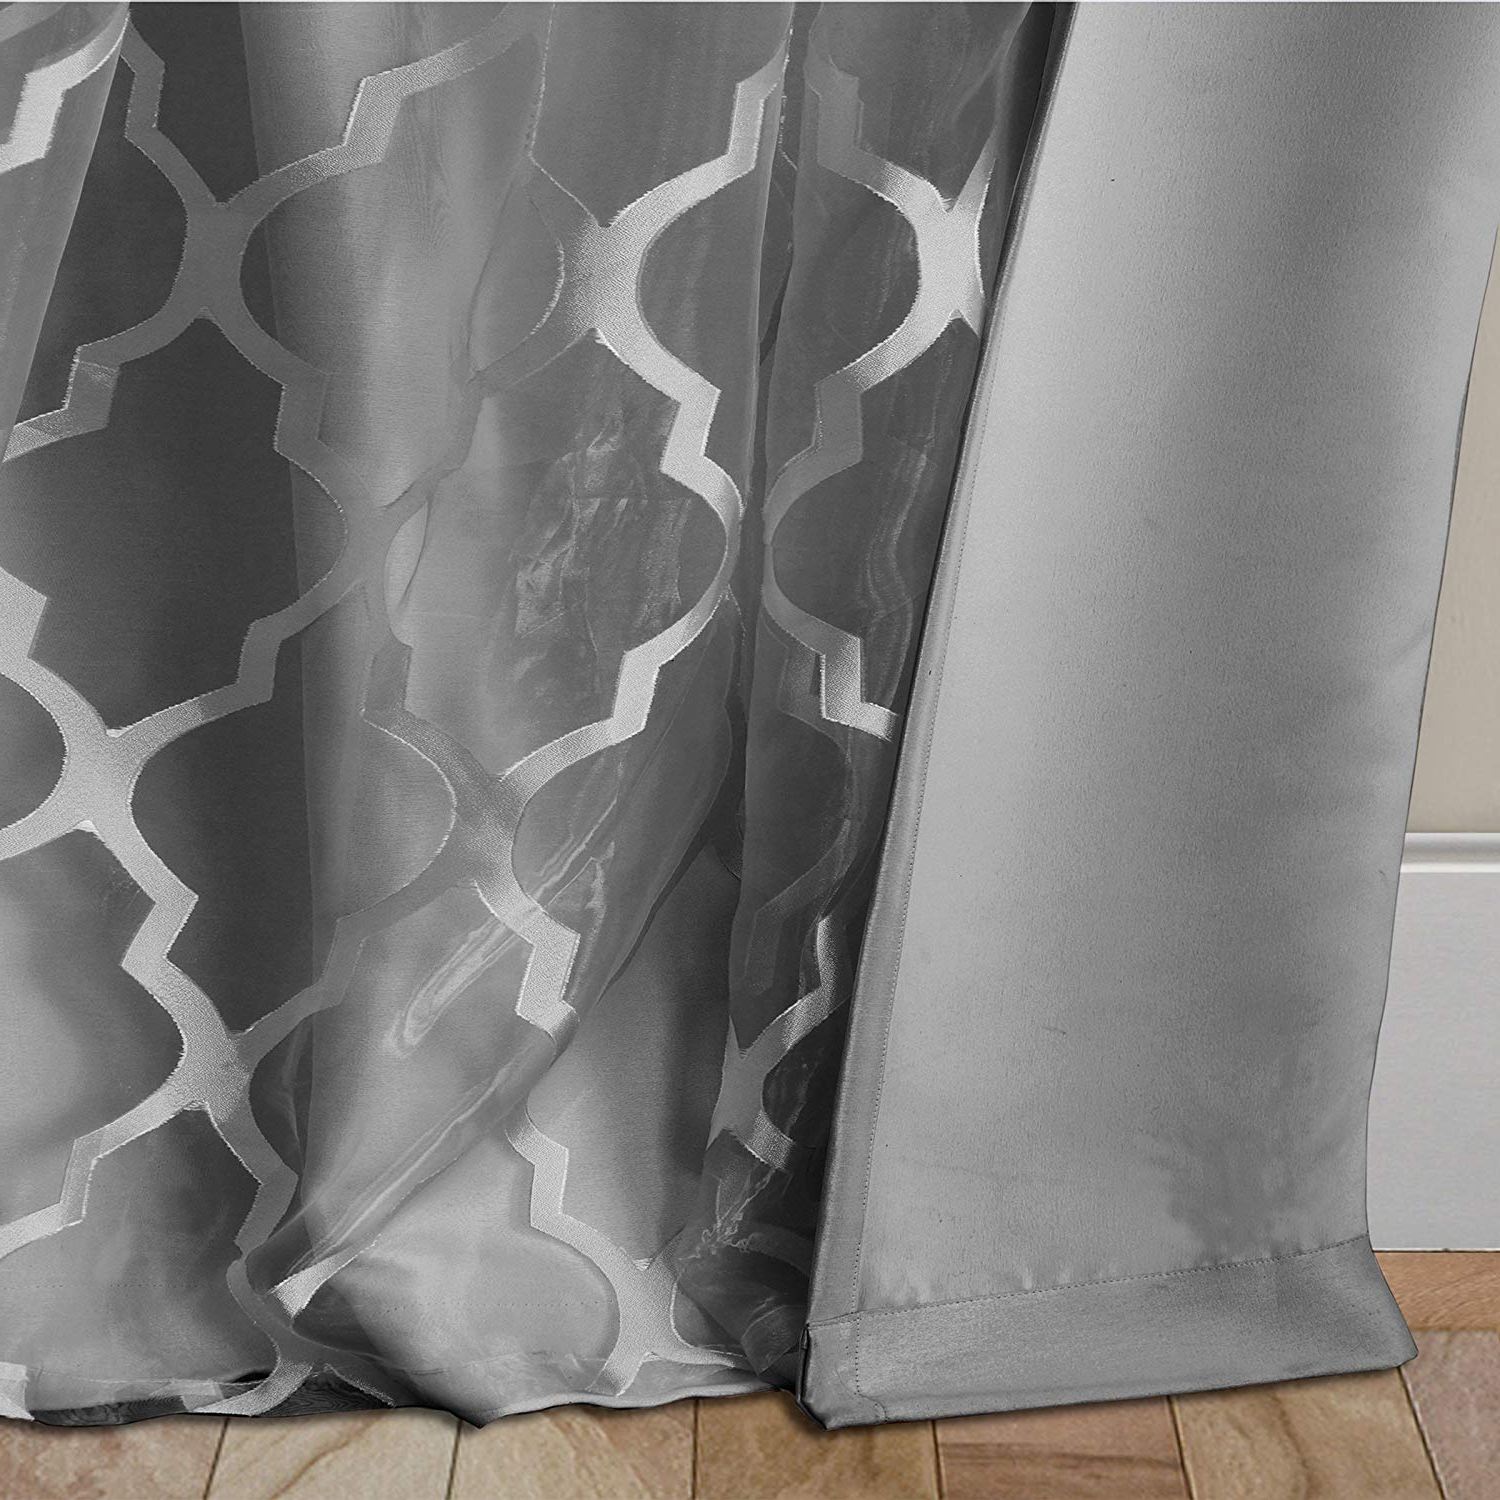 Newbridge Elrene Bethany Sheer Lattice Pattern Curtain With Attached Faux Silk Woven Blackout Lining, Grommet Top Curtain Panel, 52 Inch Wide X 84 Throughout 2021 Bethany Sheer Overlay Blackout Window Curtains (View 5 of 20)